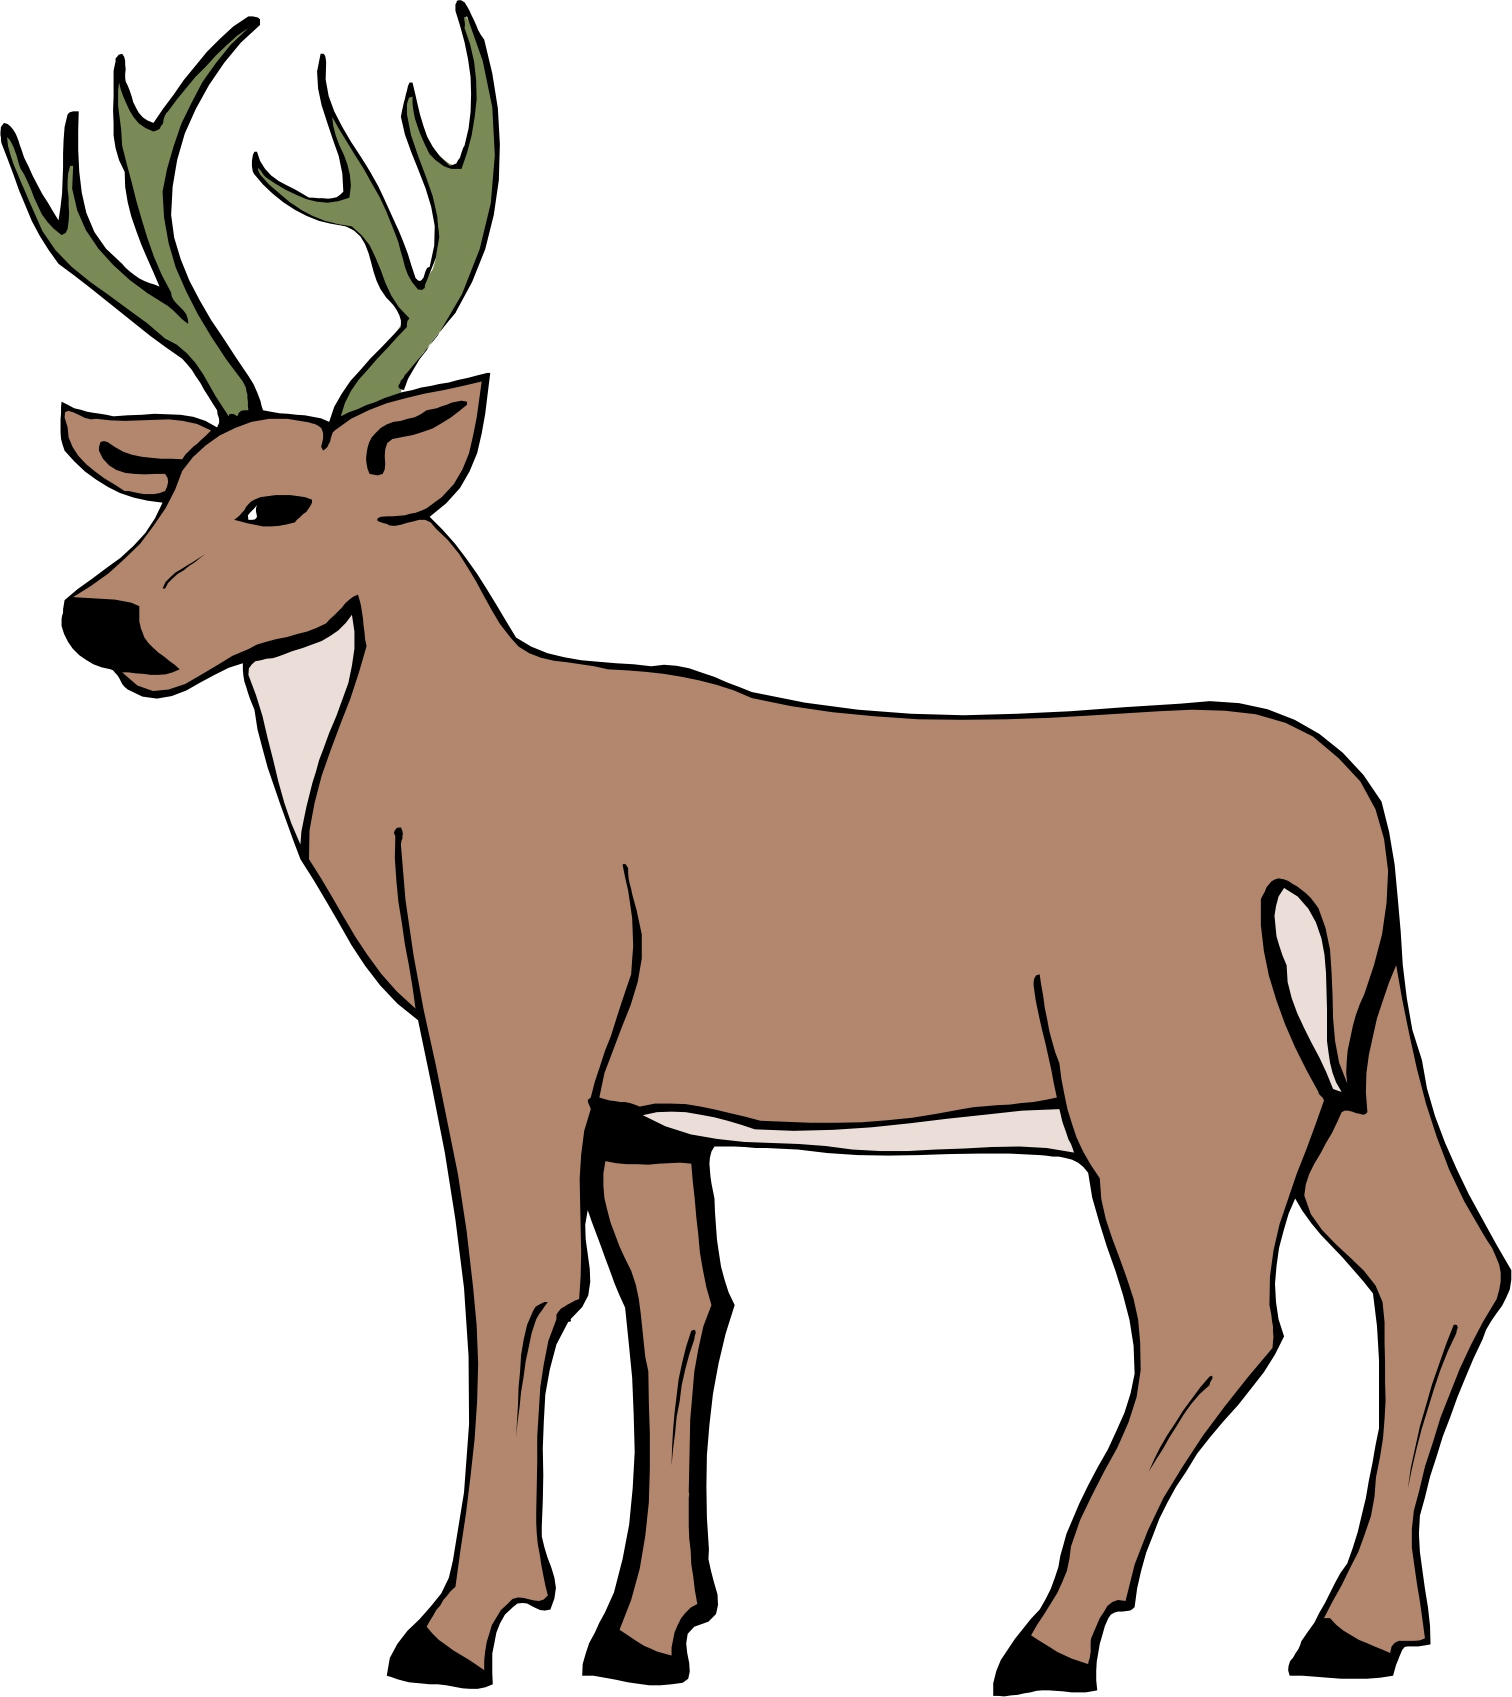 cartoon deer pictures clipart best elk clip art for cnc elk clipart images